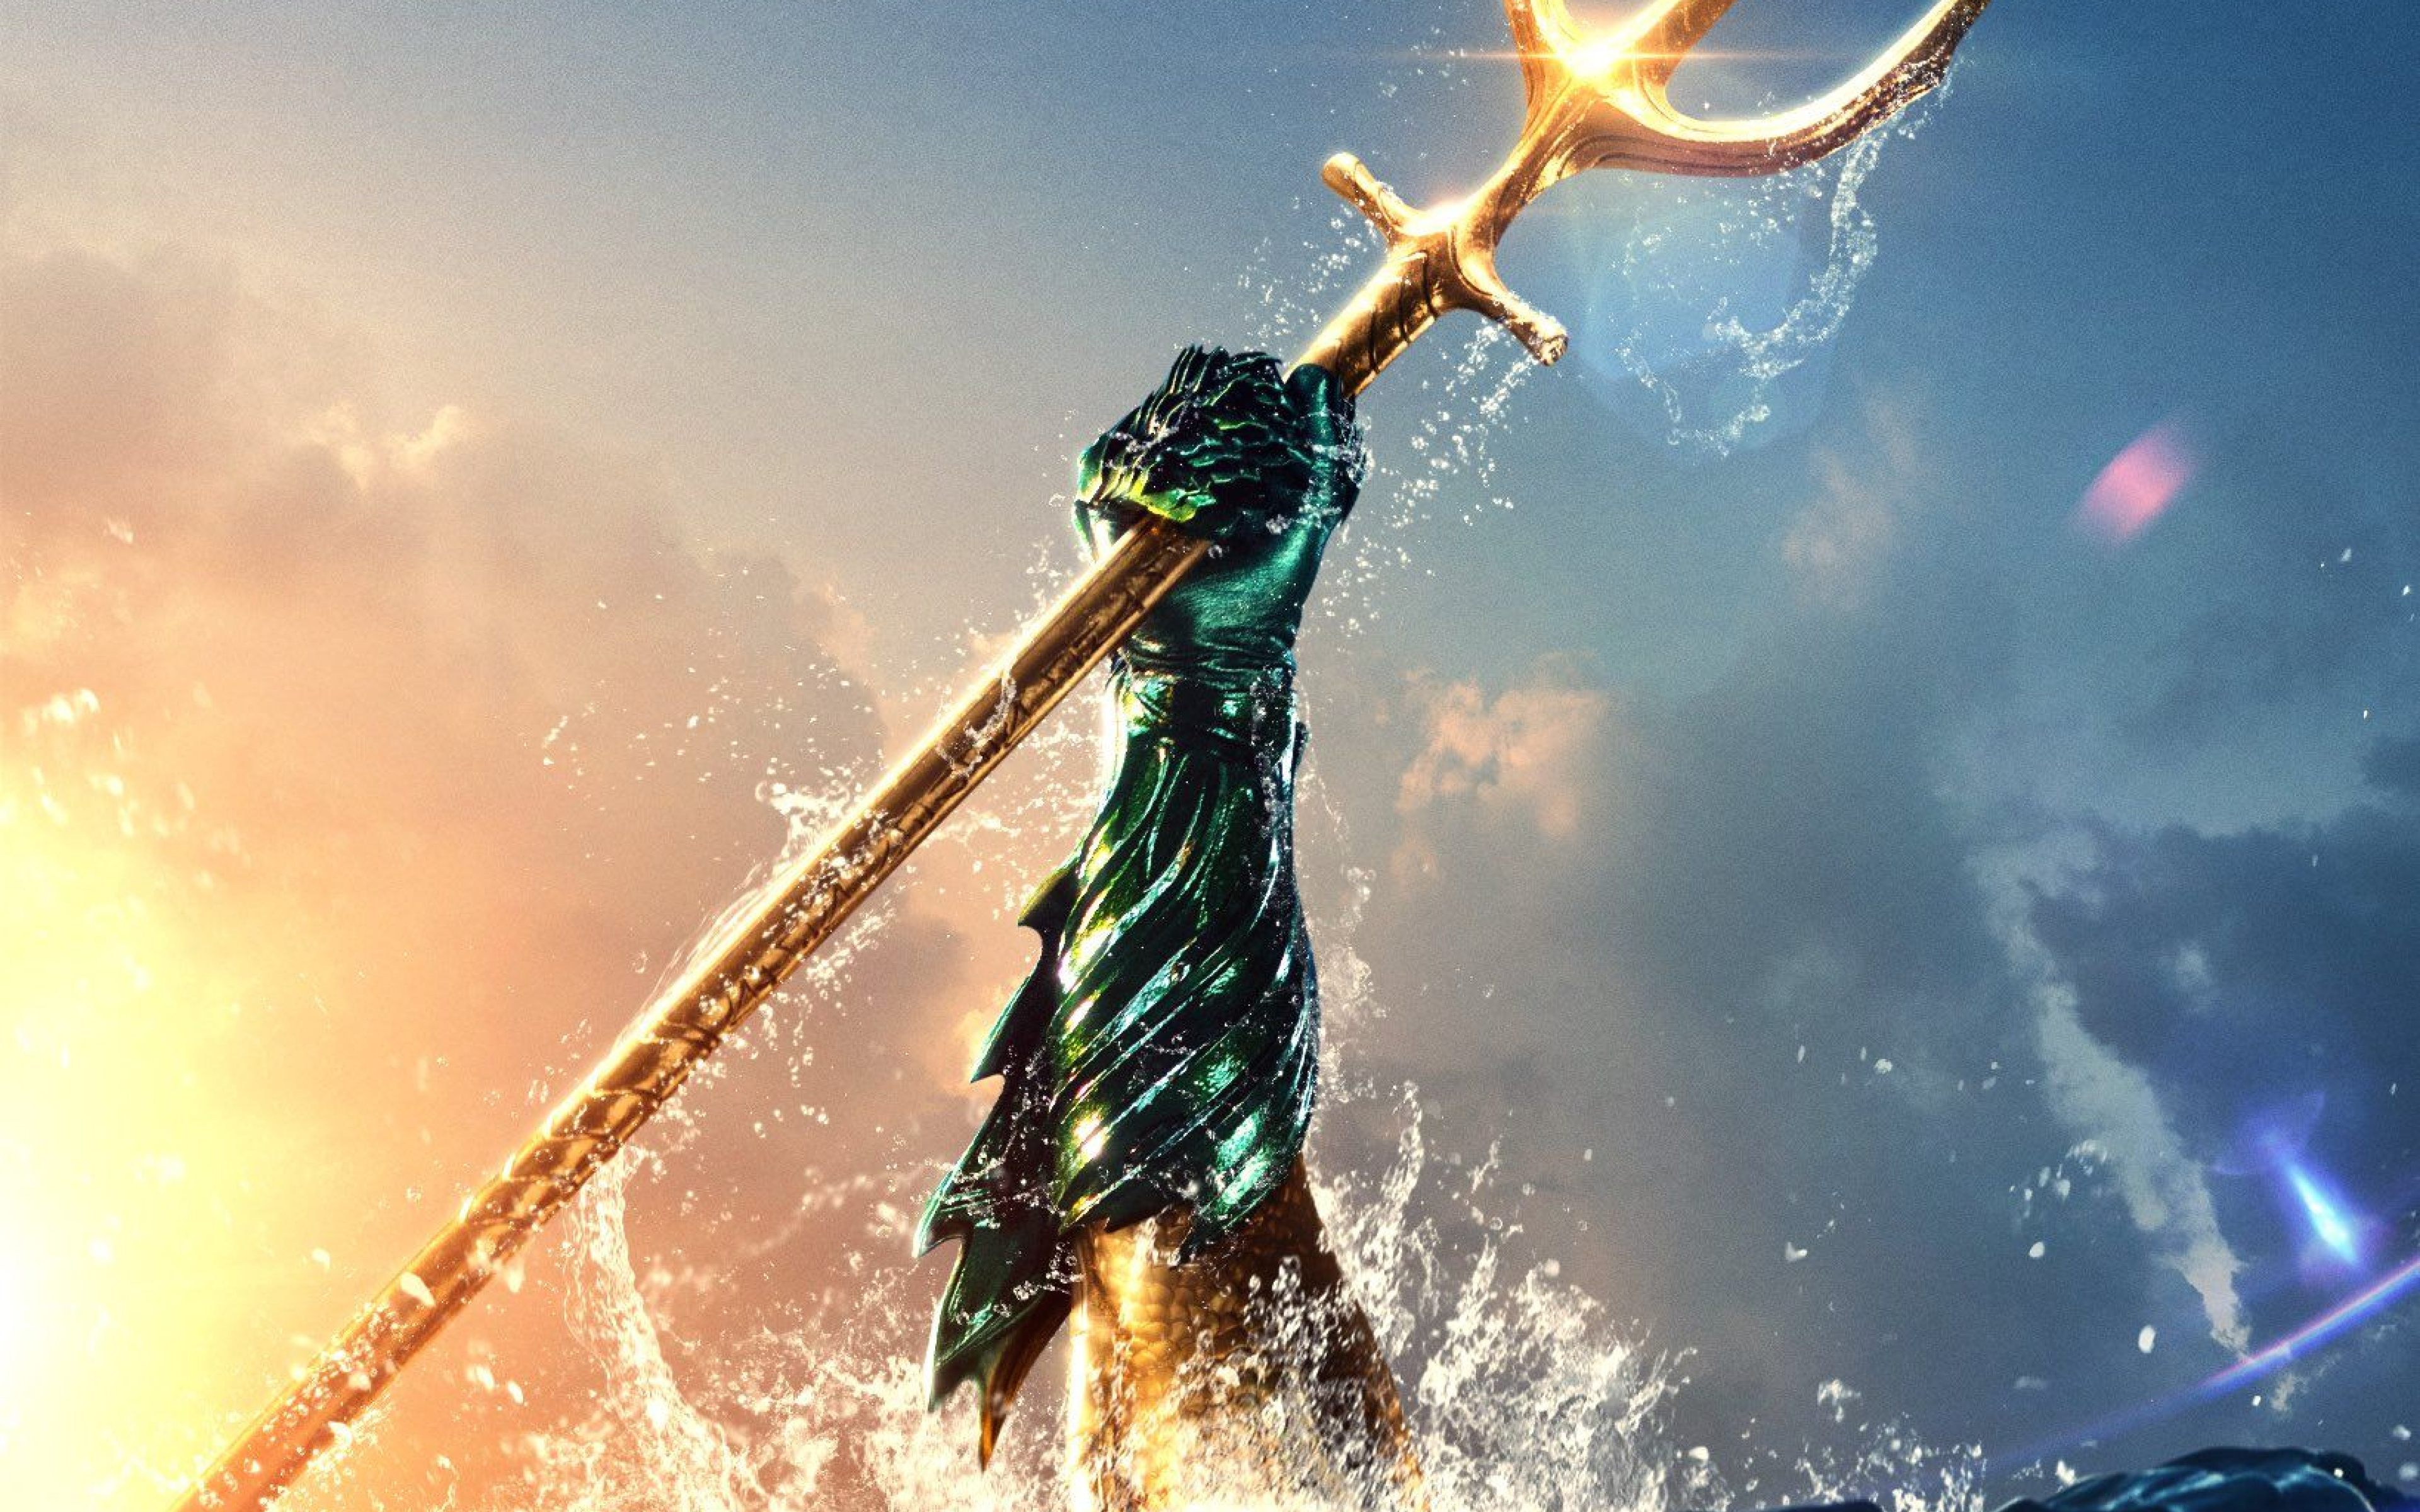 Download Aquaman Movie Brand New Poster 1080x1920 Resolution Full